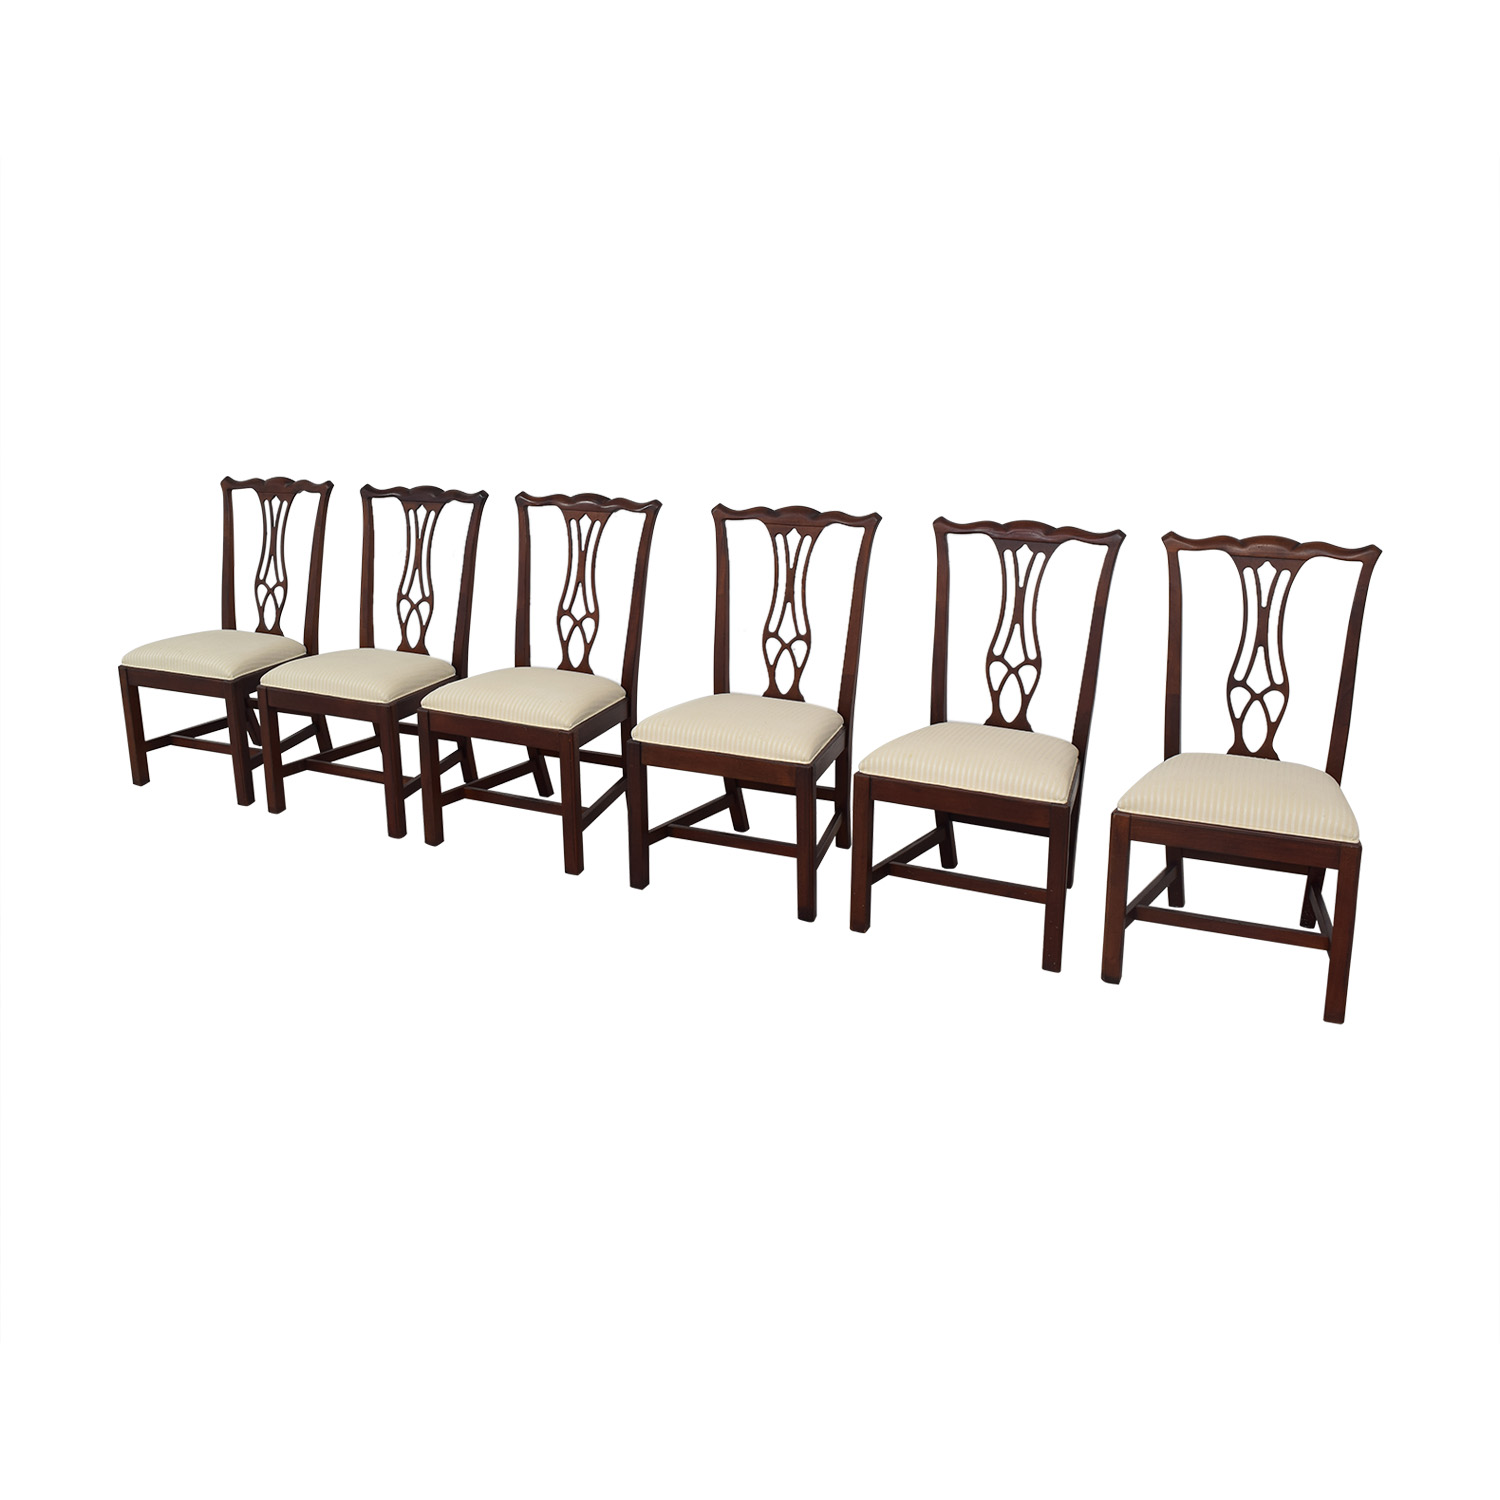 shop Drexel Heritage Upholstered Dining Chairs Drexel Heritage